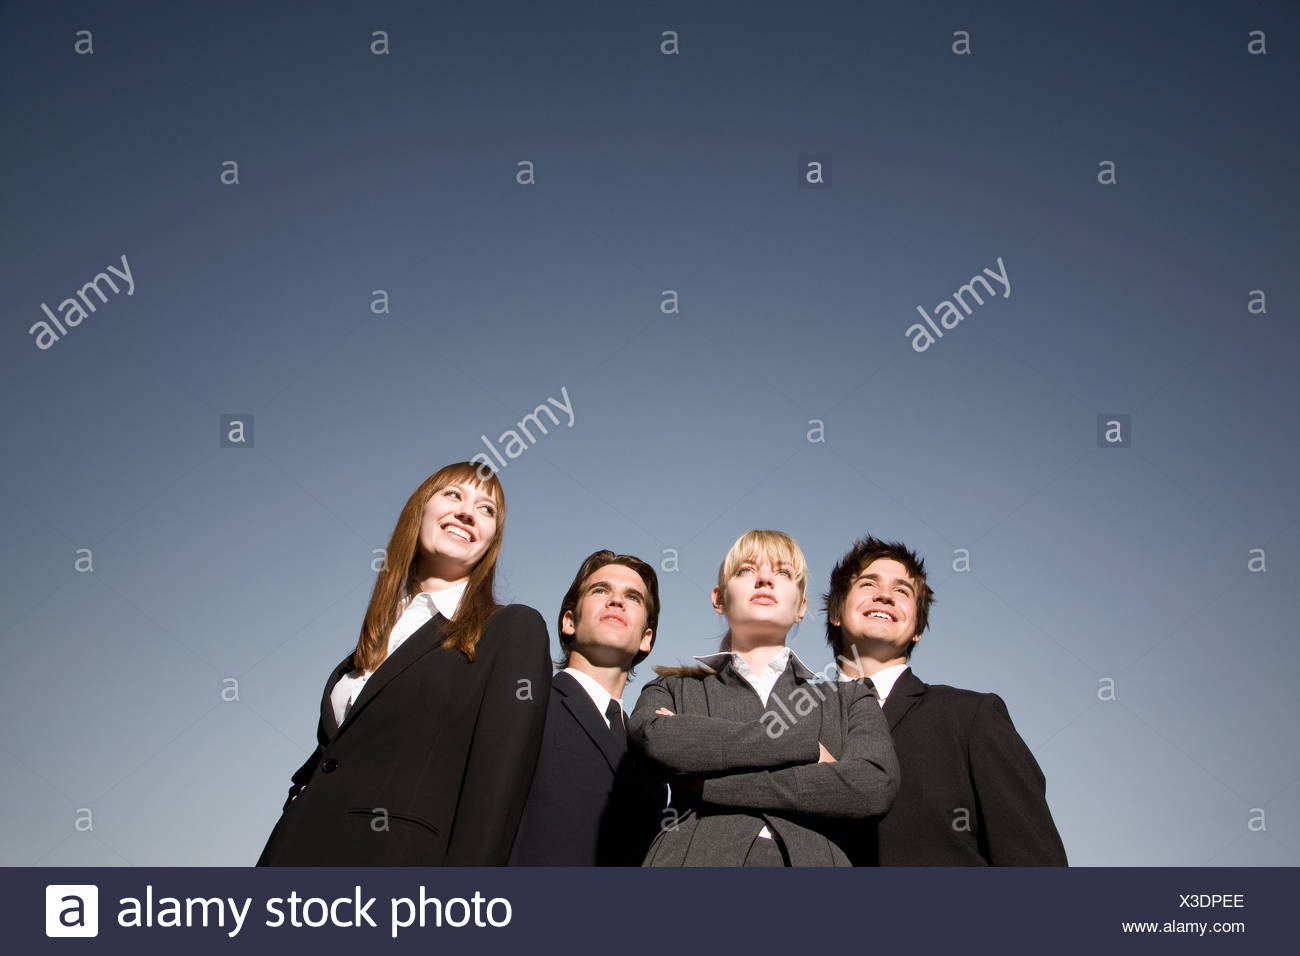 Group of businessmen and businesswomen - Stock Image